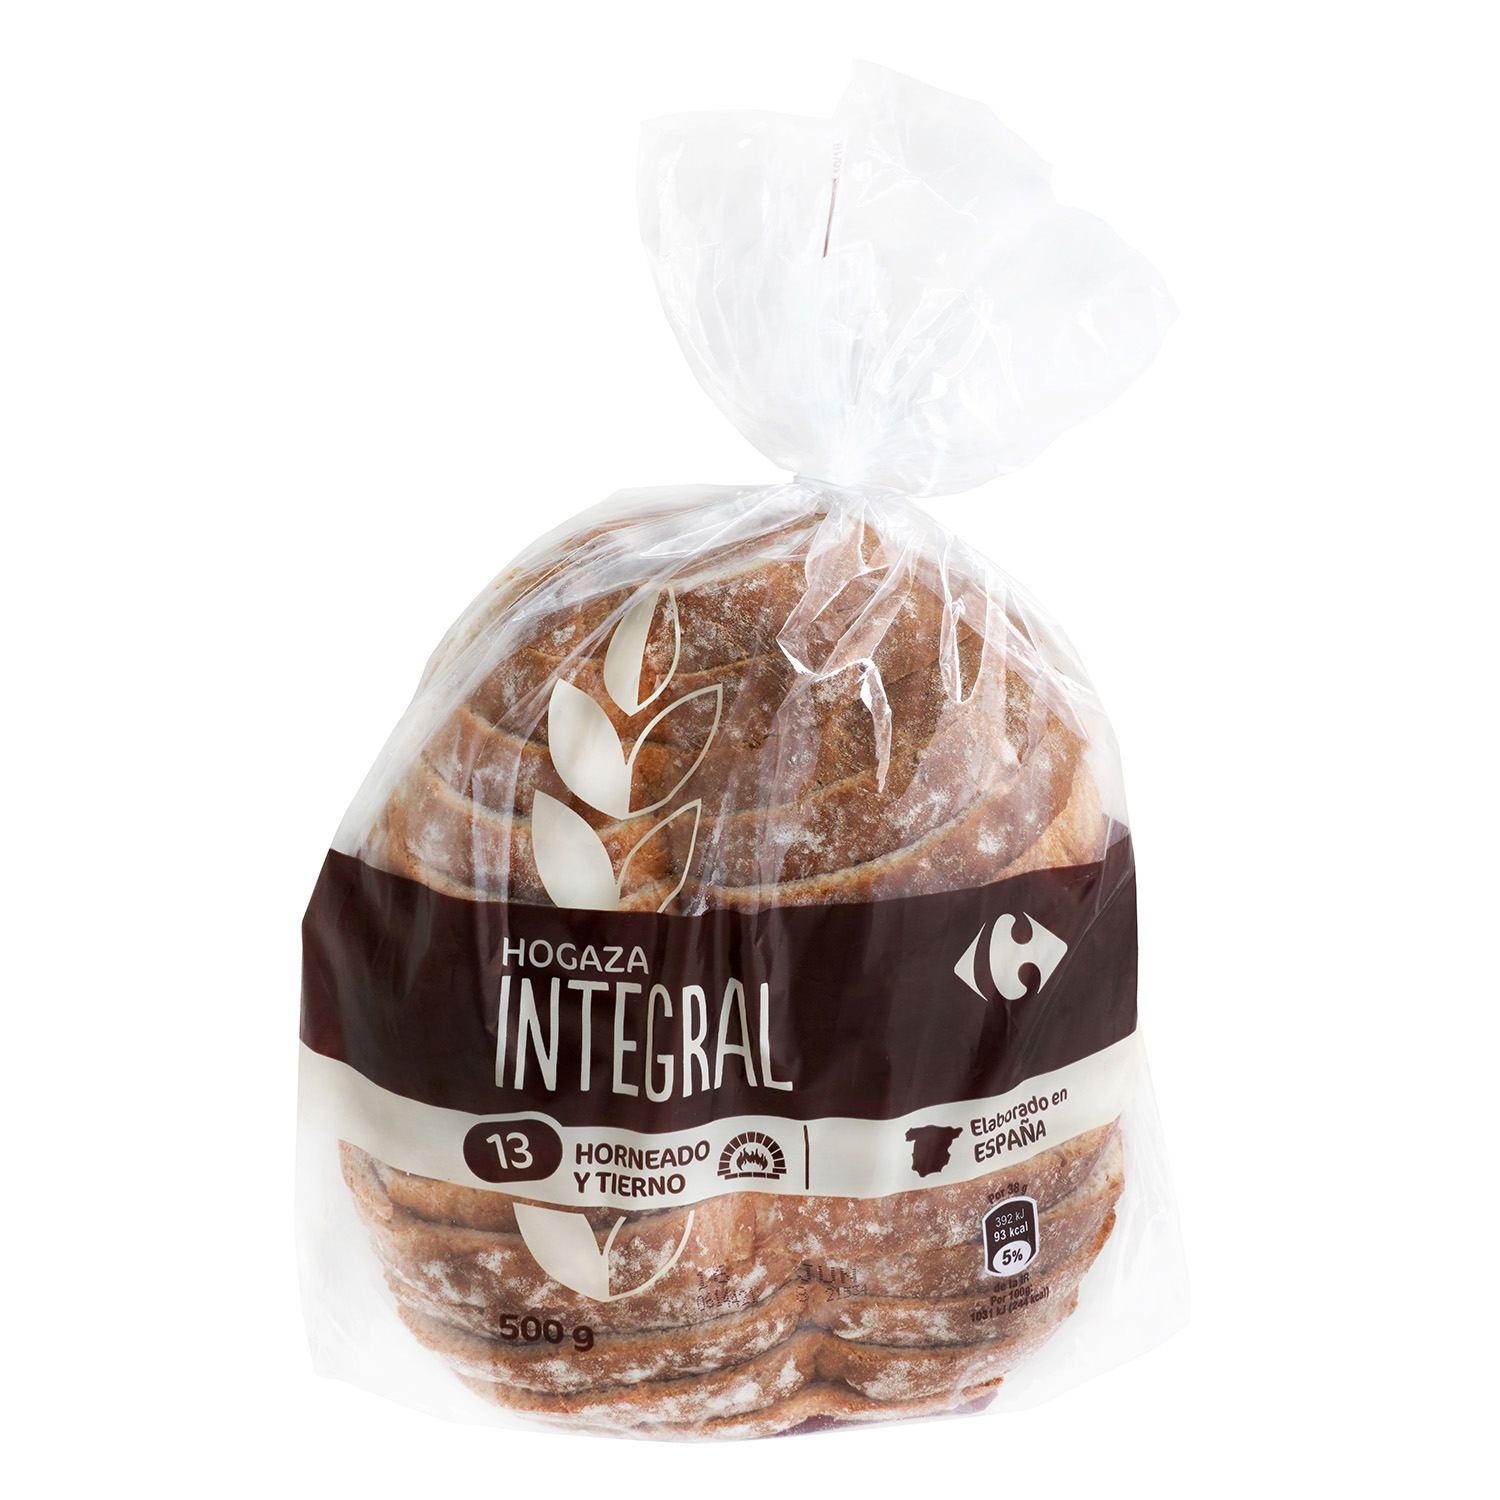 Pan de hogaza integral